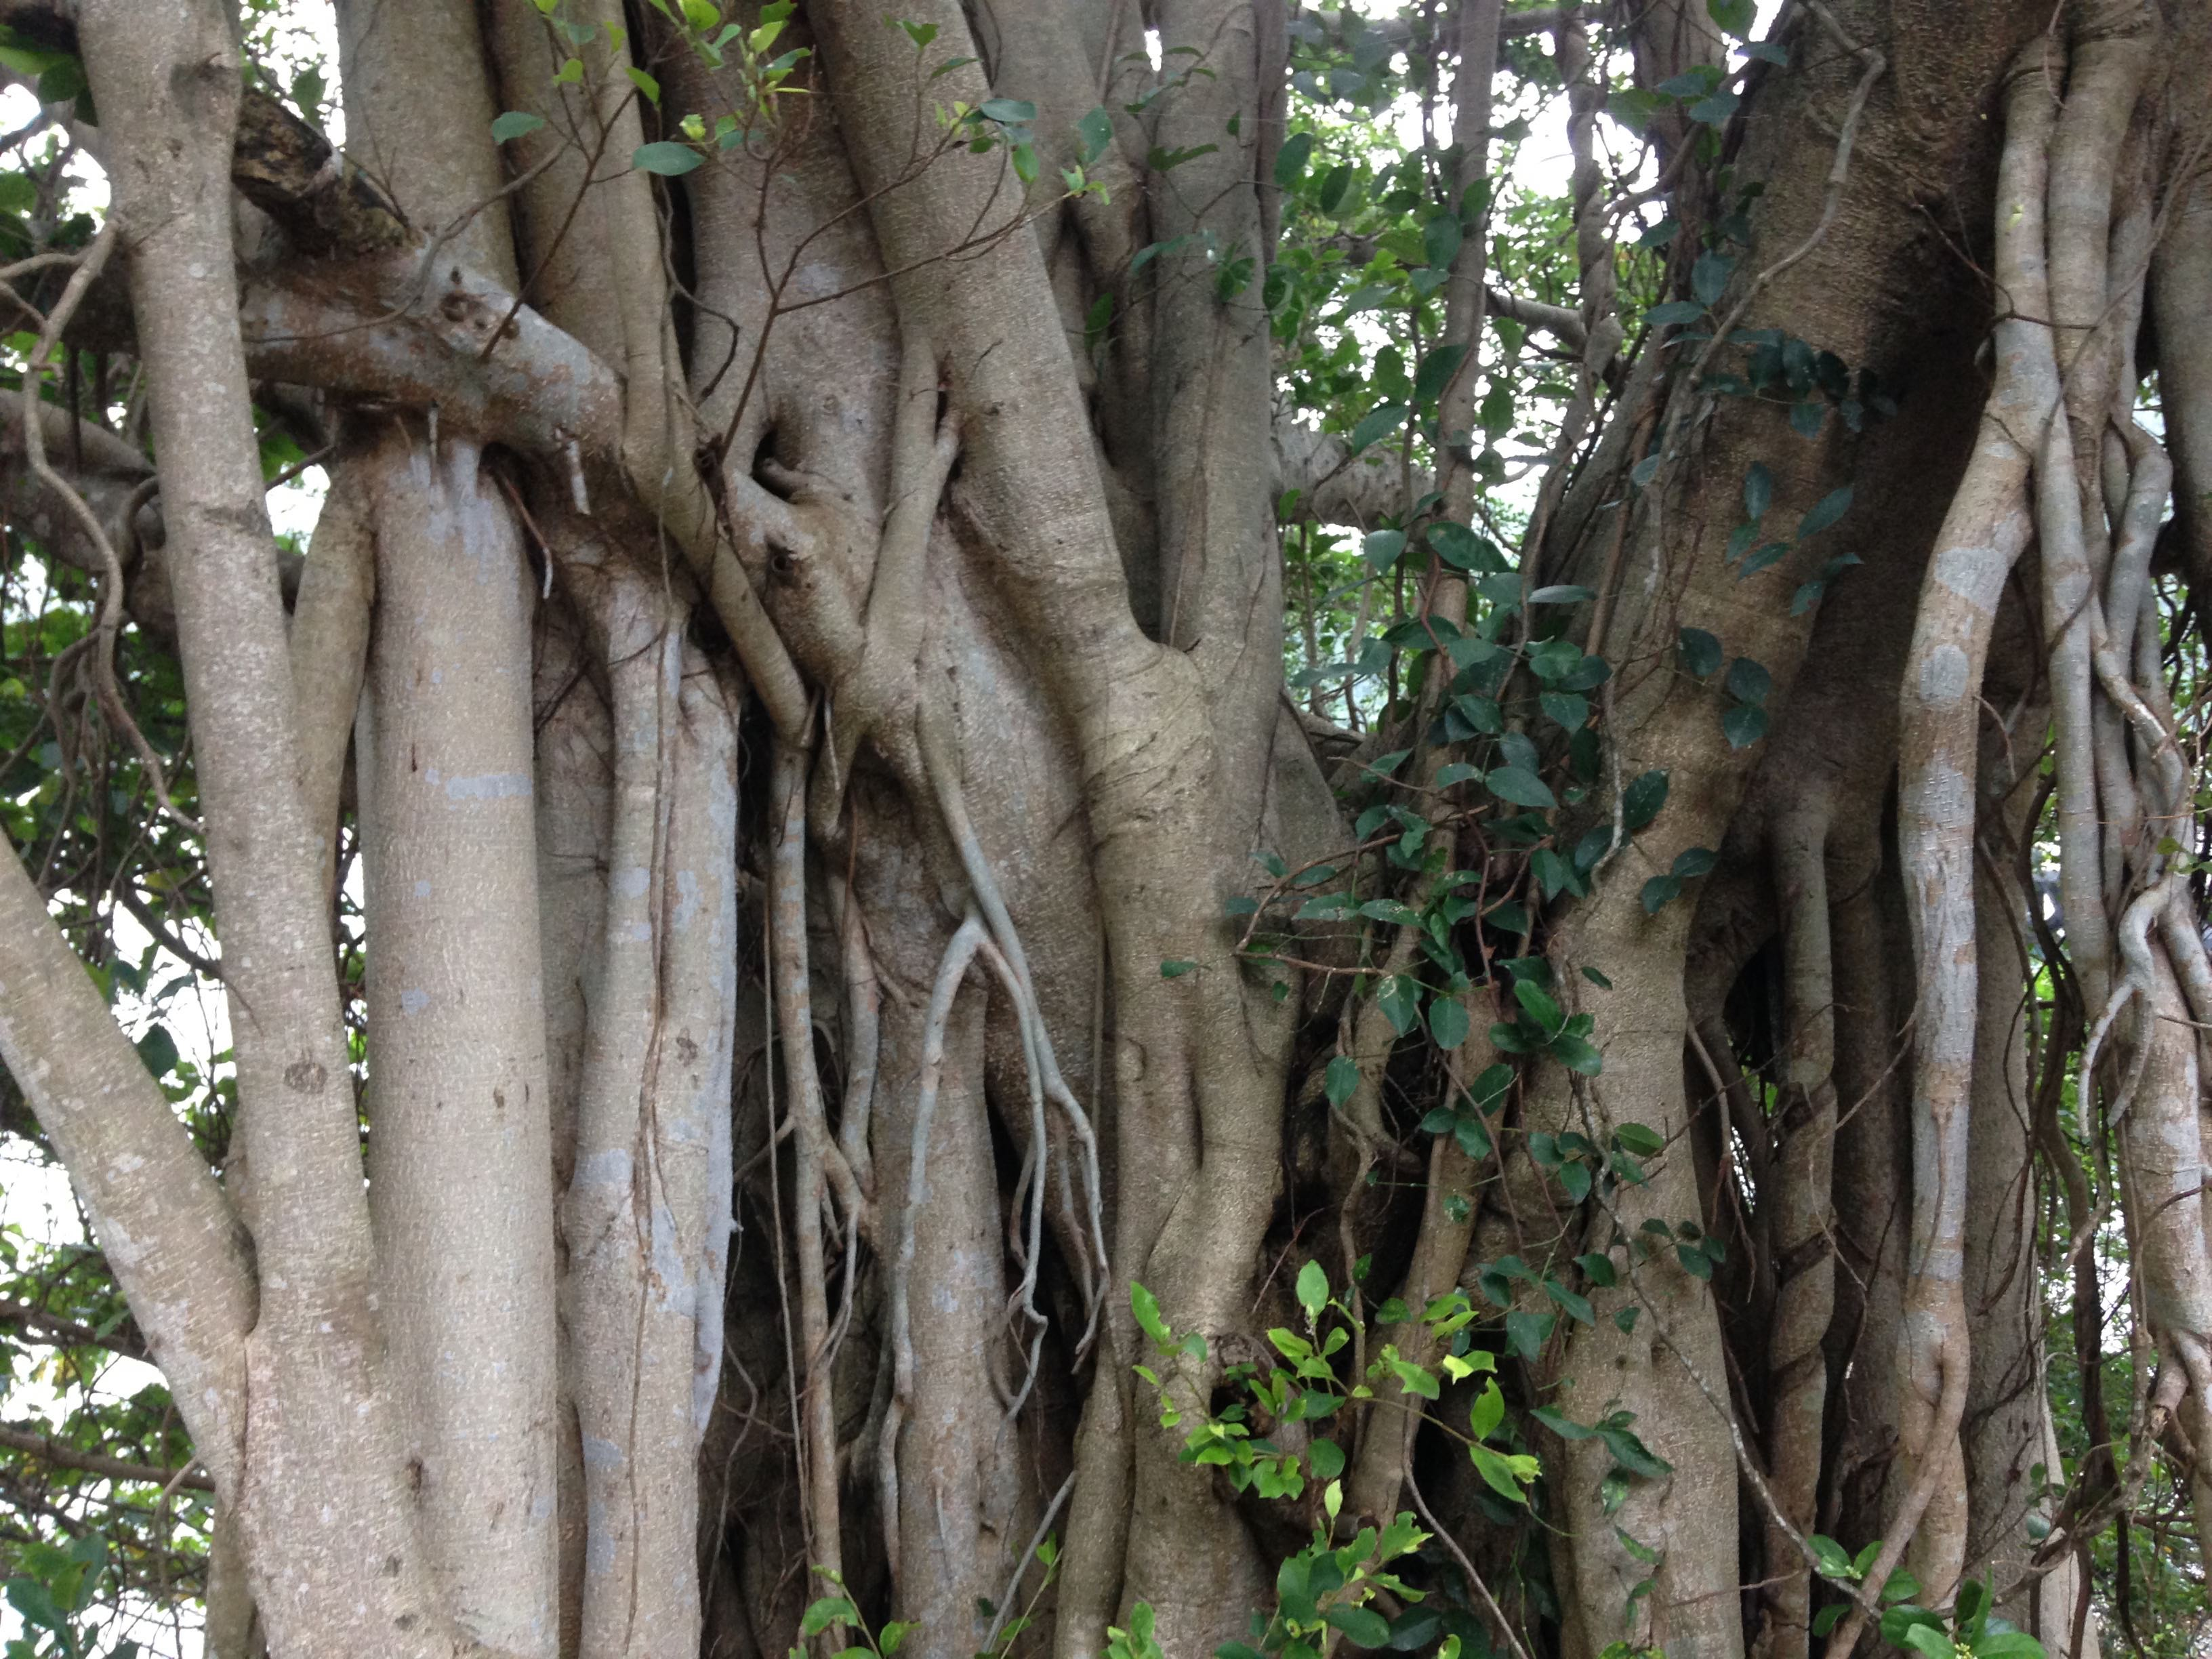 Banyan tree branches